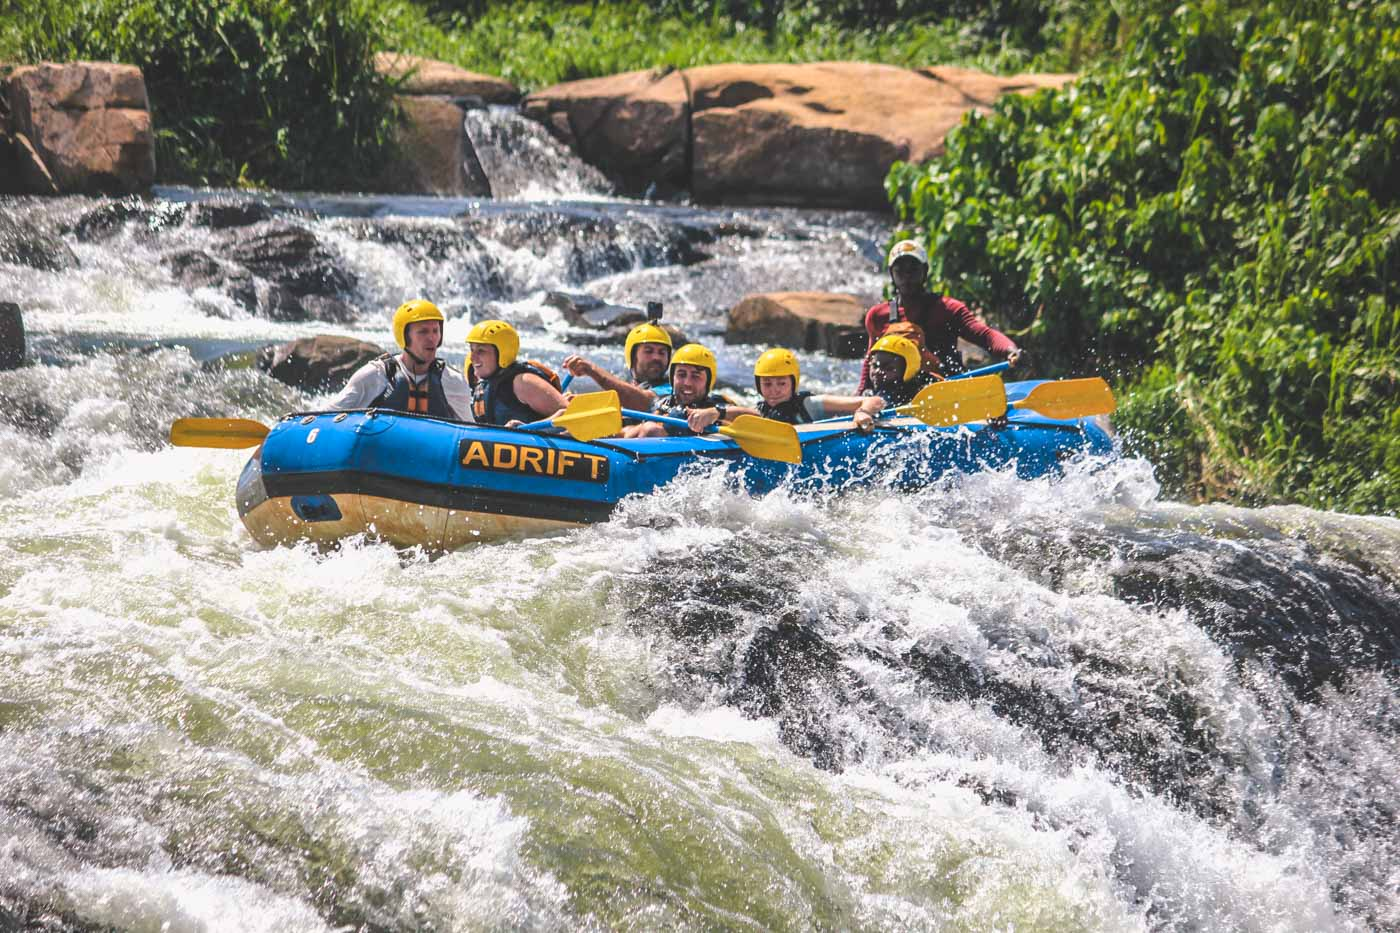 Whitewater rafting on the Nile. Photo by Adrift.